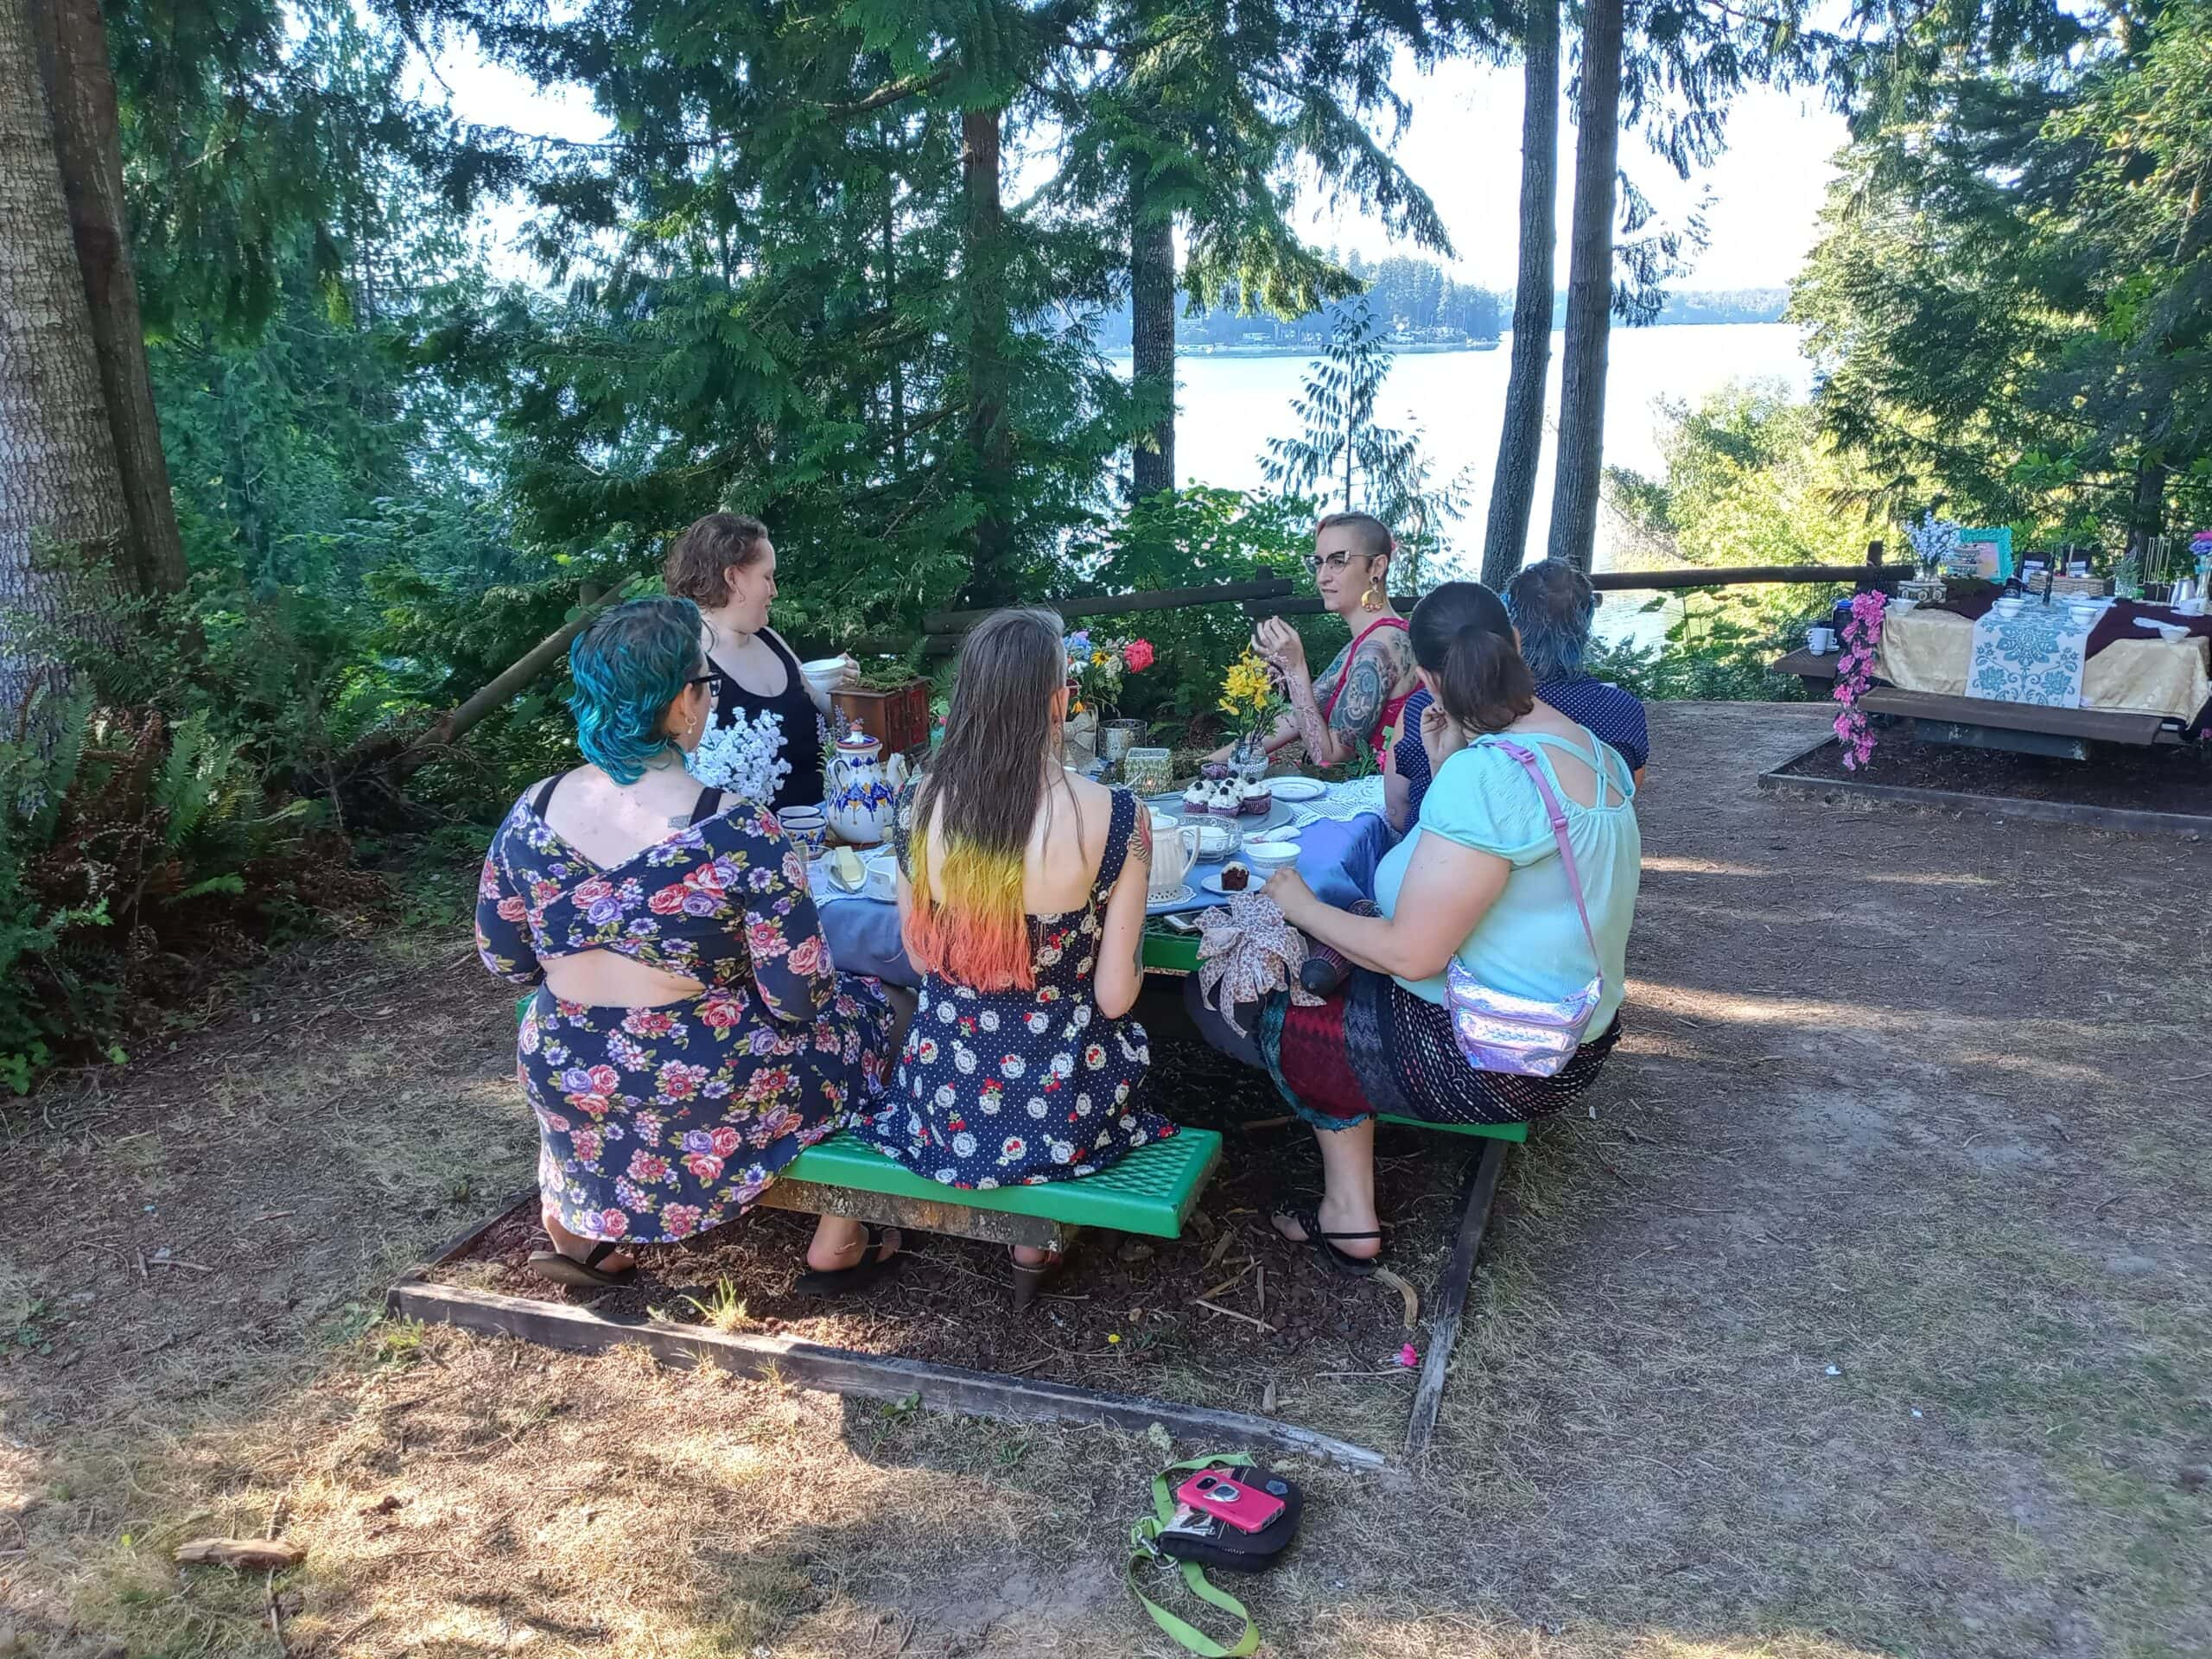 A photo of a small group of people sitting around a picnic table sipping tea.